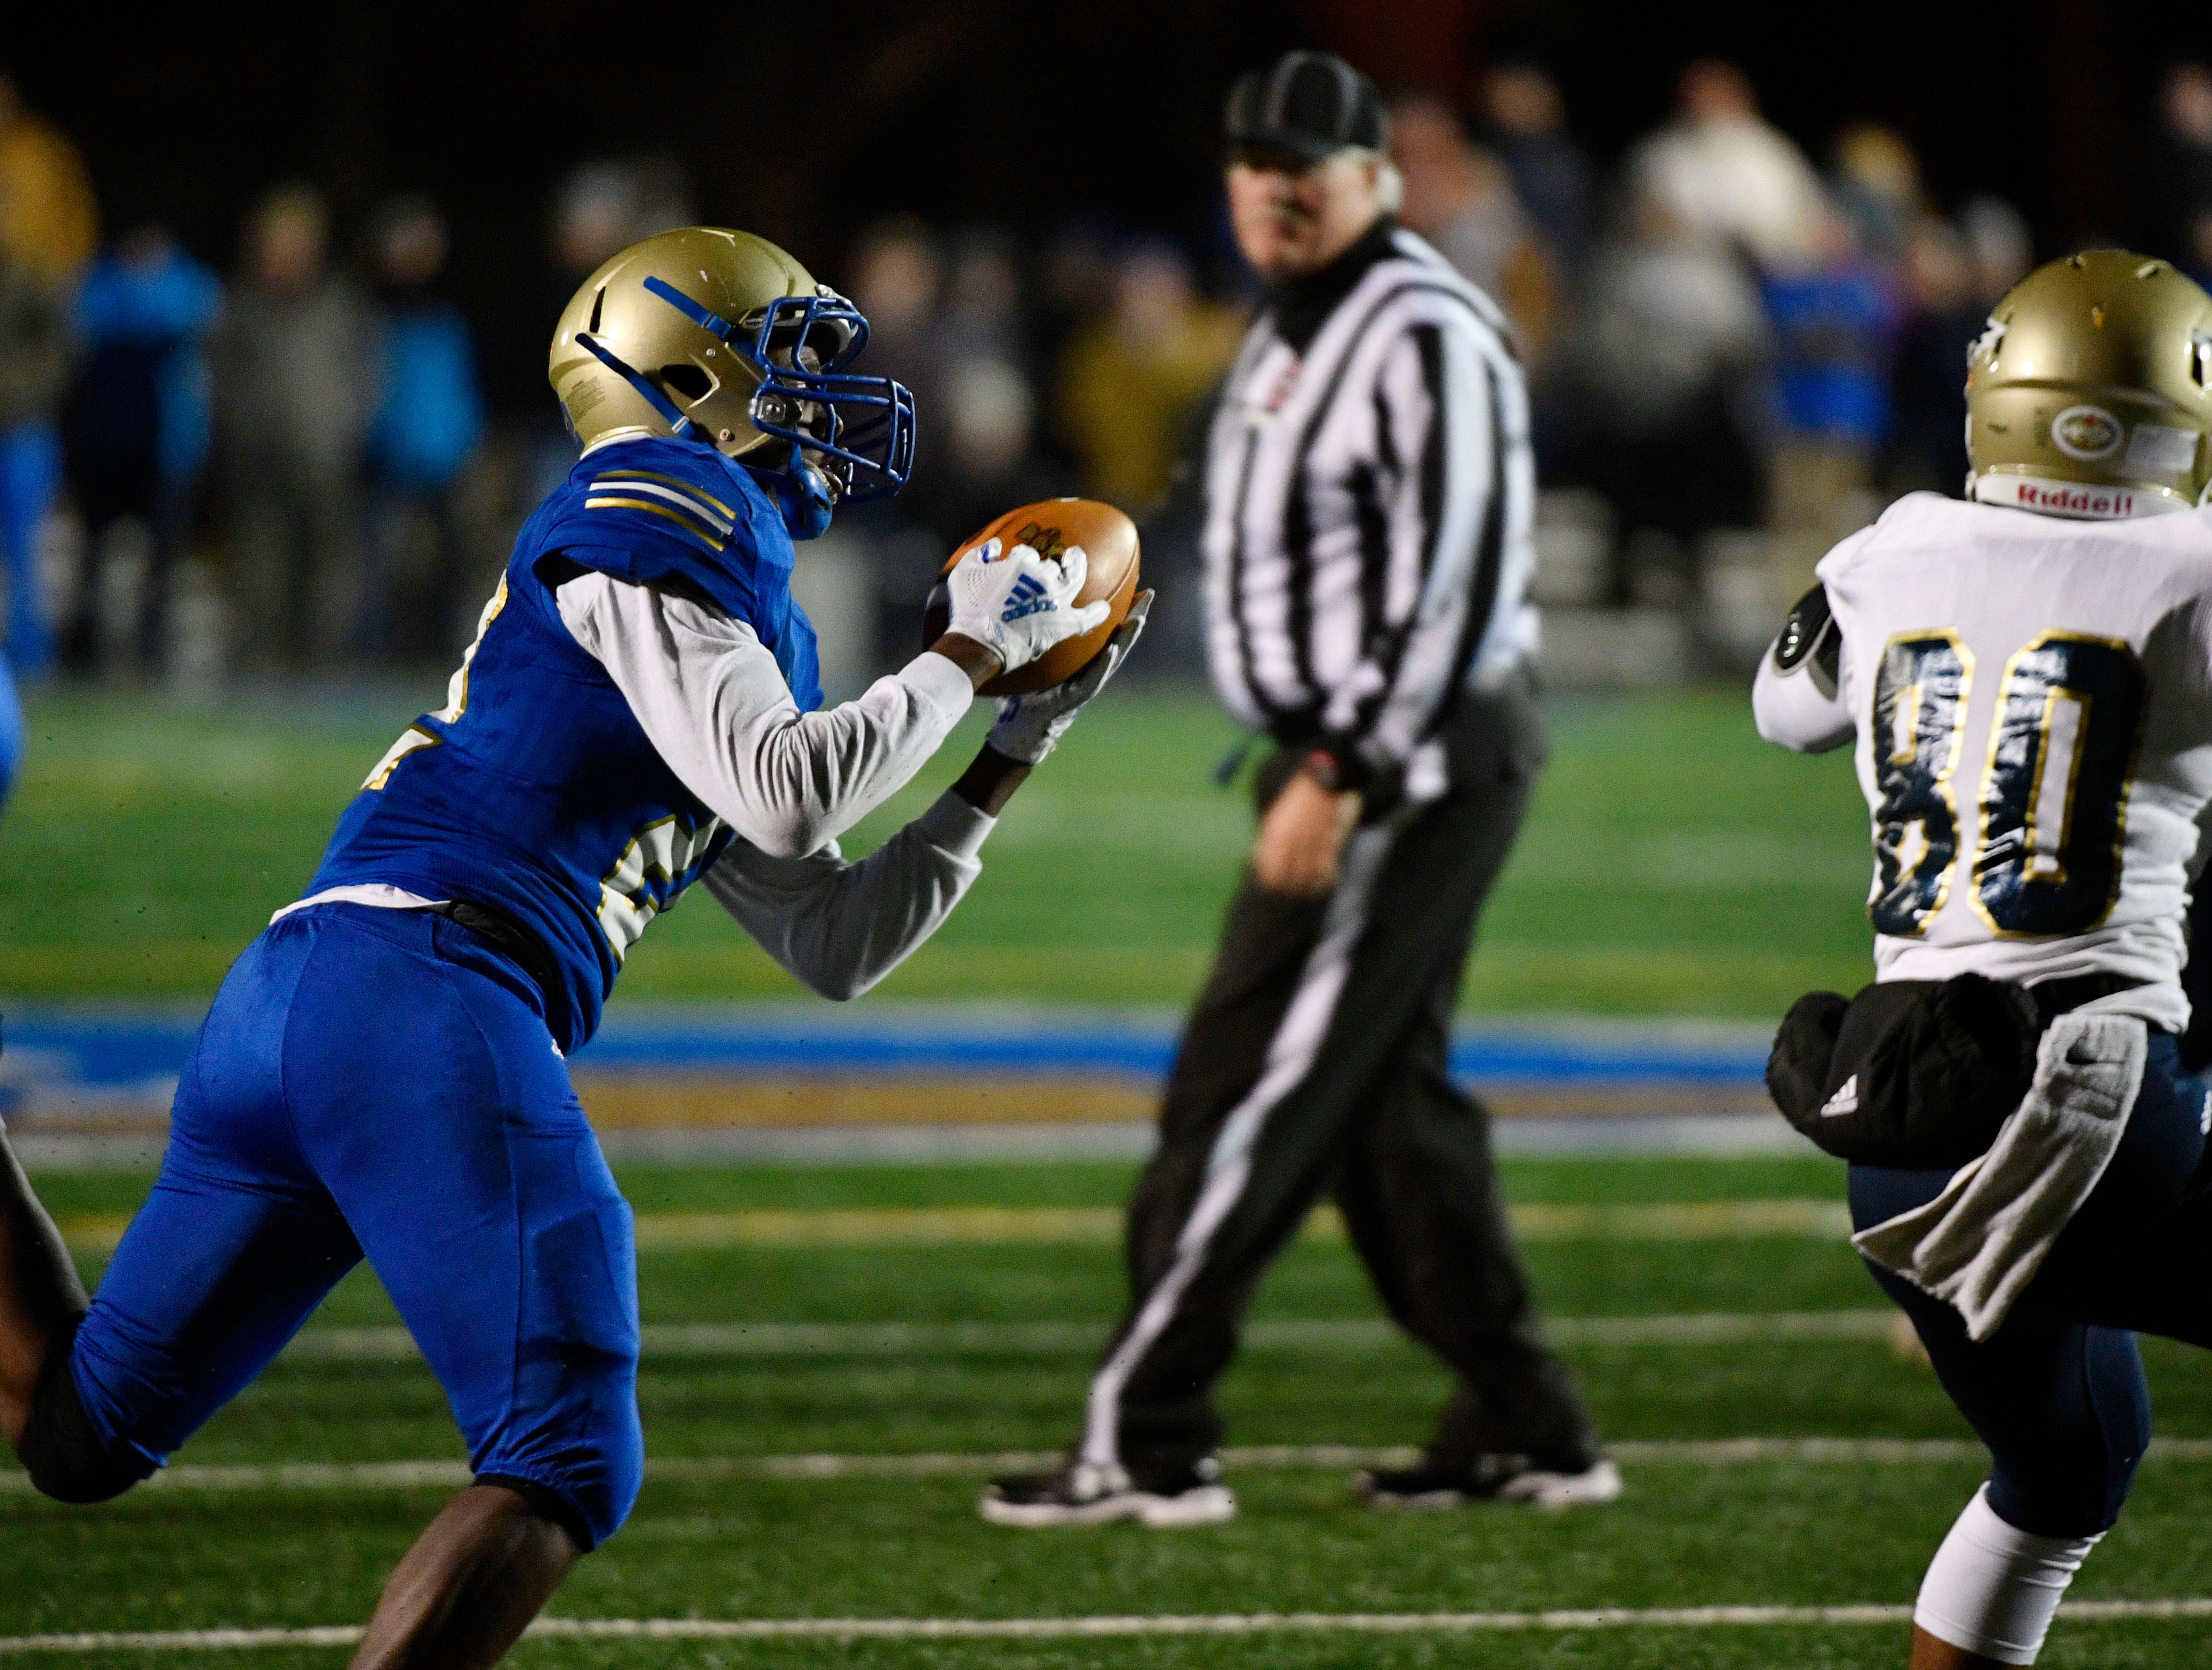 Xiere Howard intercepts a pass intended for Chayce Bishop as Independence plays at Brentwood during the Class 6A second round game Friday Nov. 9, 2018, in Brentwood, Tenn.